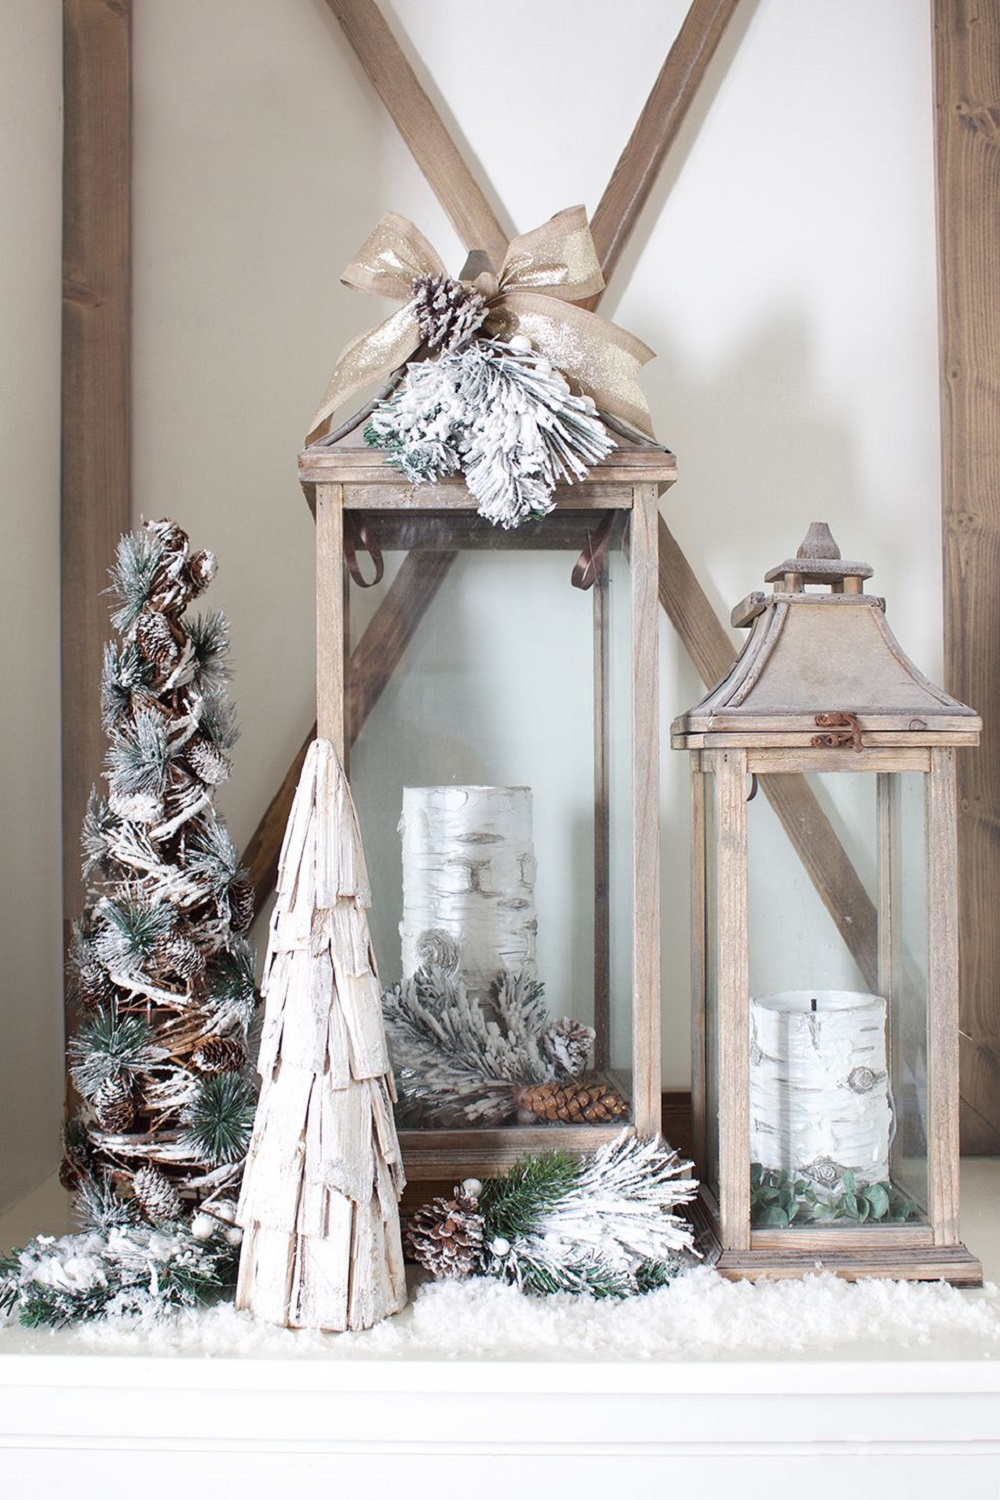 t4-1 Ideas for modern Christmas decorations that are heartwarming